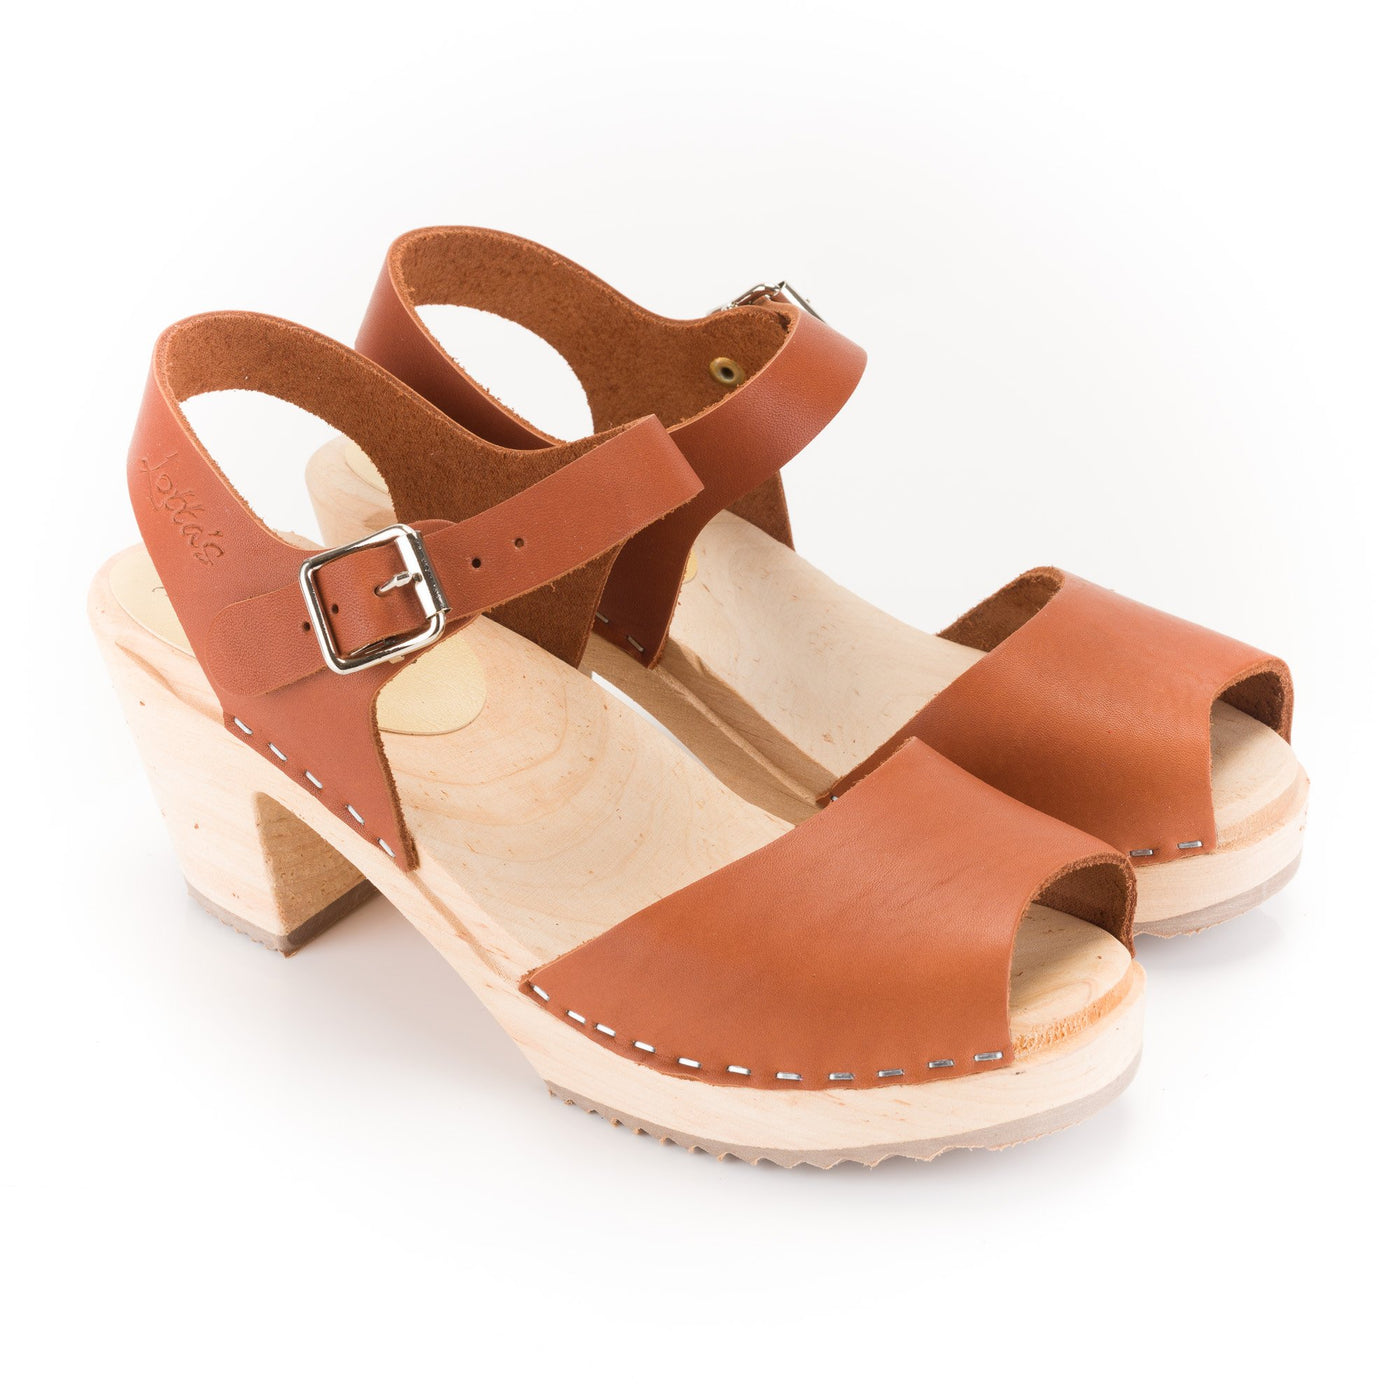 Brown Leather Clogs by Lotta from Stockholm at Dollydagger